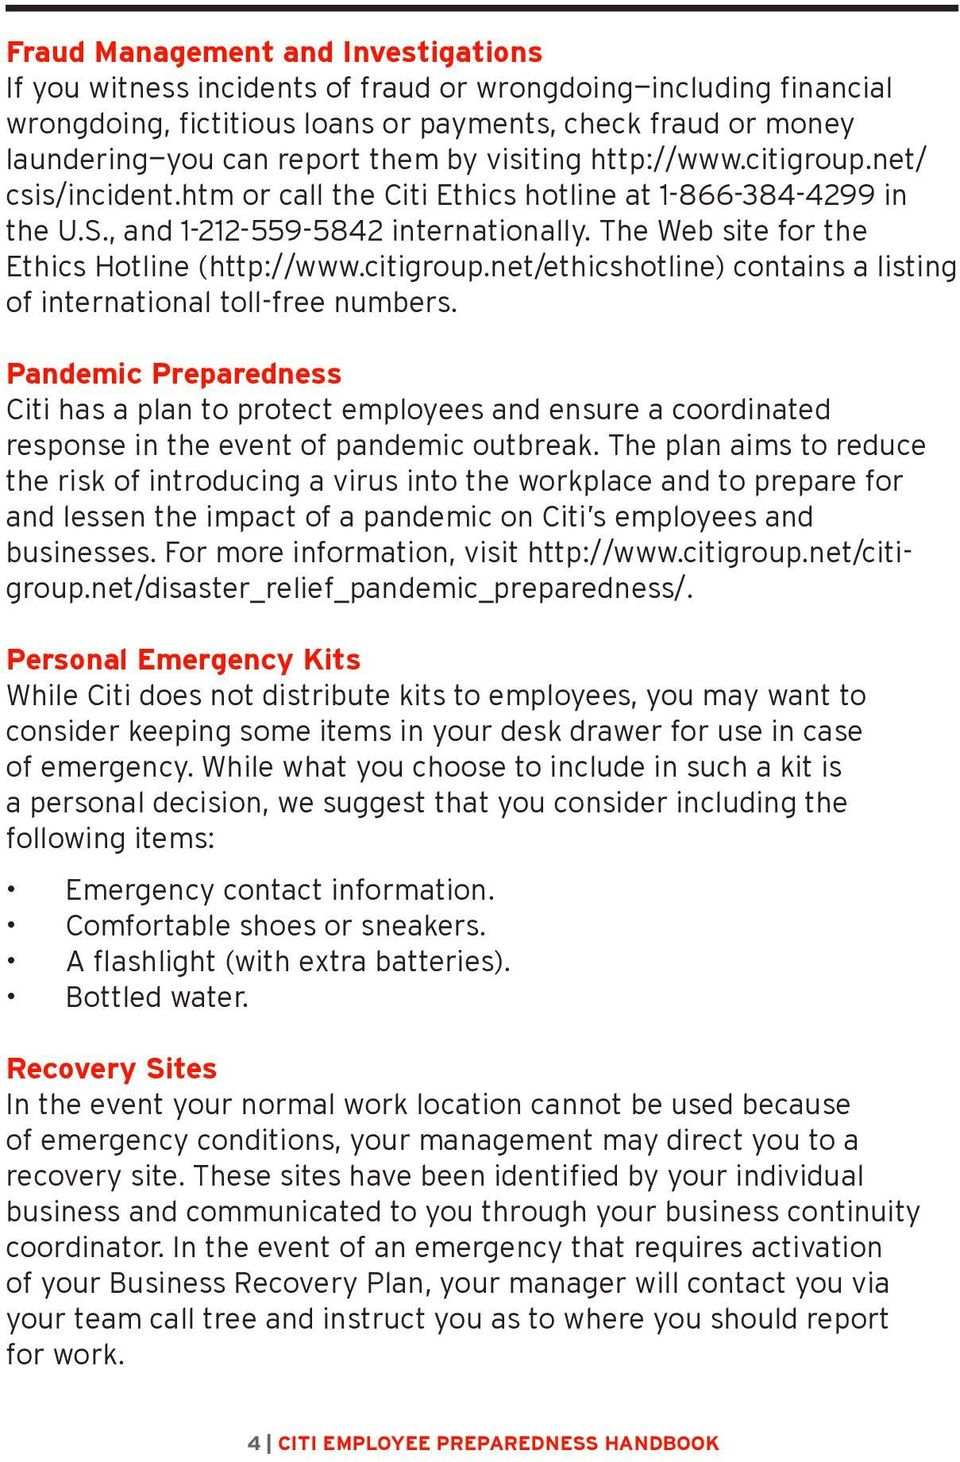 The Web site for the Ethics Hotline (http://www.citigroup.net/ethicshotline) contains a listing of international toll-free numbers.